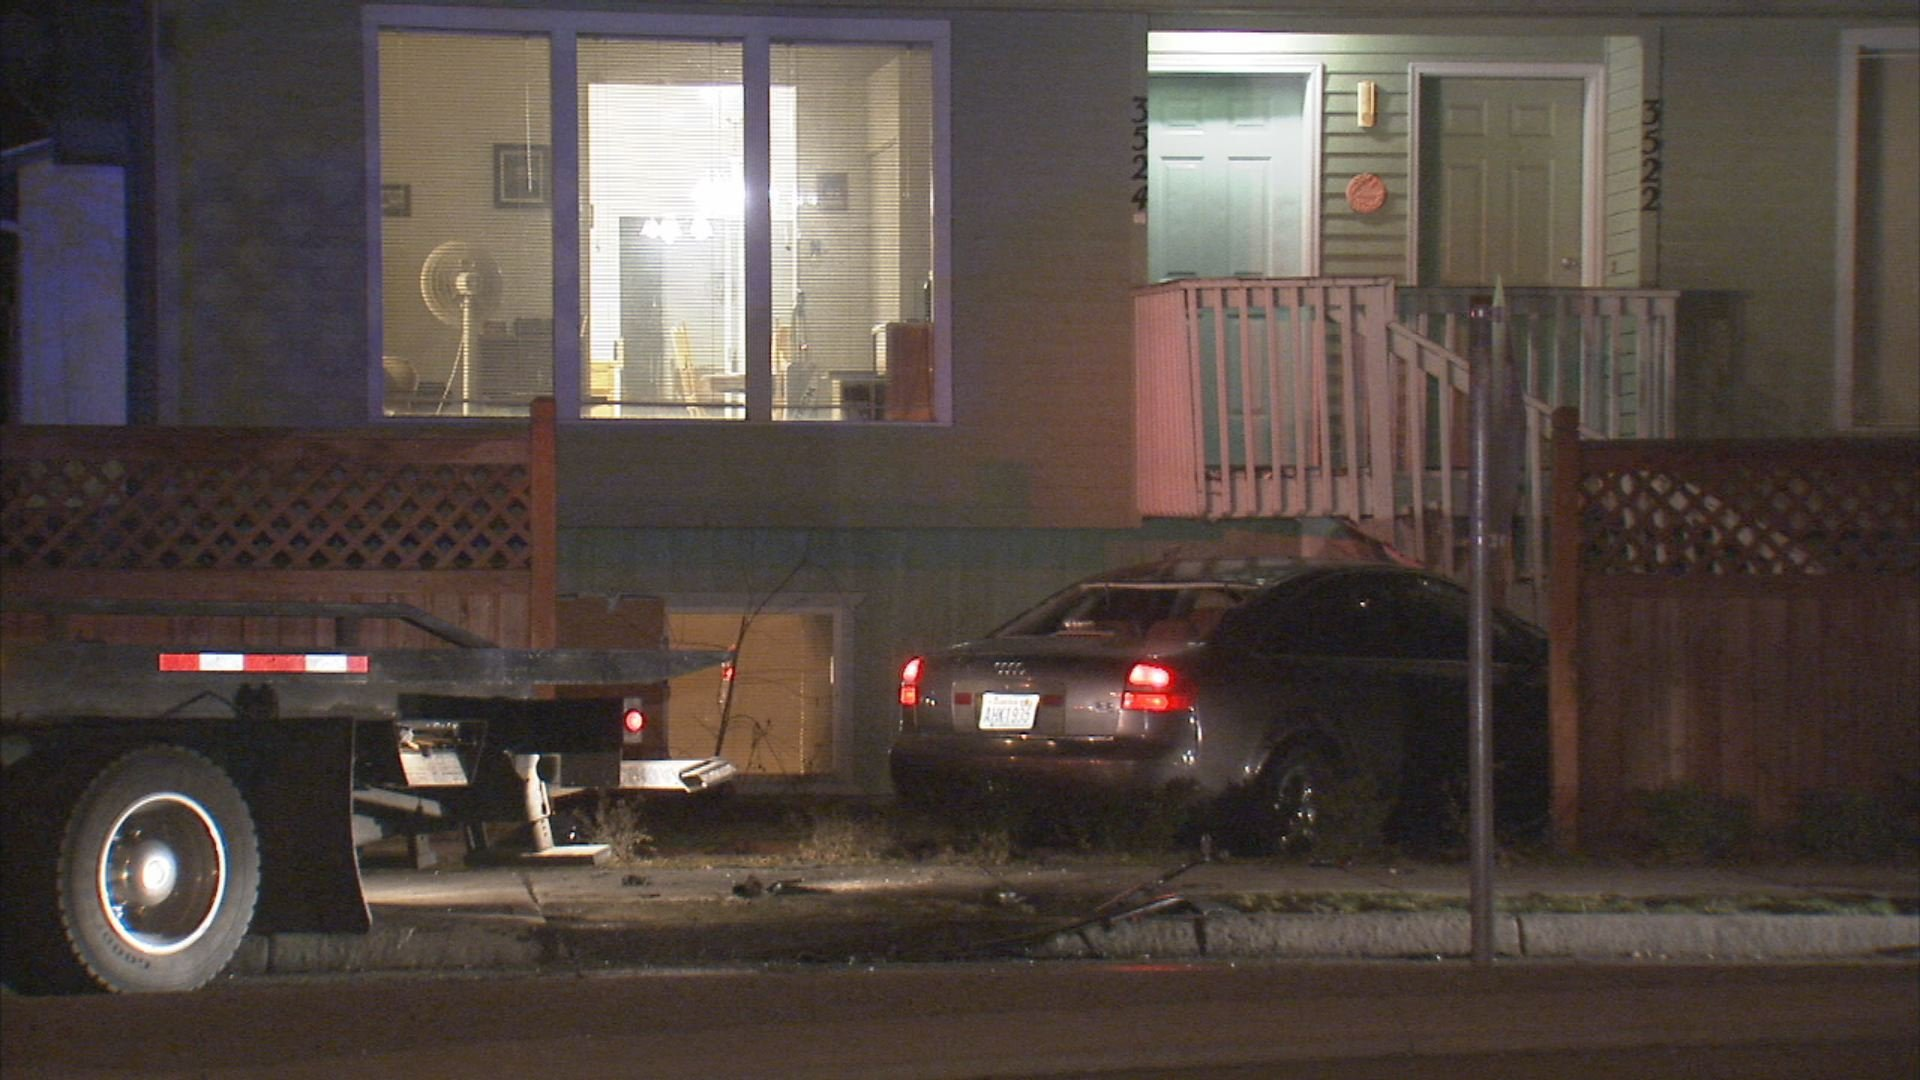 A car crashed into a house after a short pursuit on the lower south hill early Tuesday morning